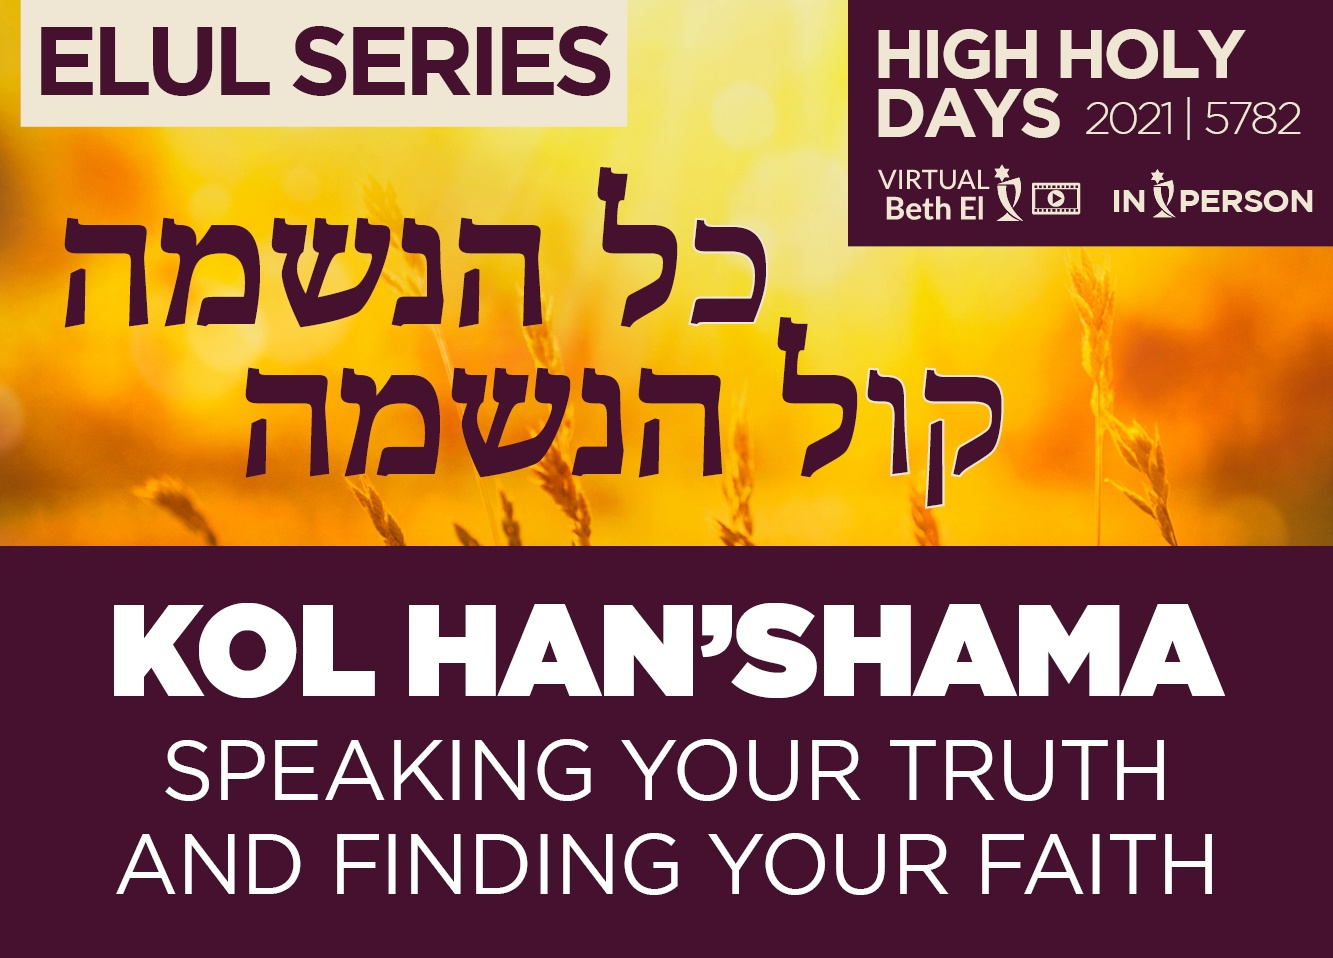 Kol Han'shama Elul Speaking Your Truth and Finding Your Faith event graphic August 2021